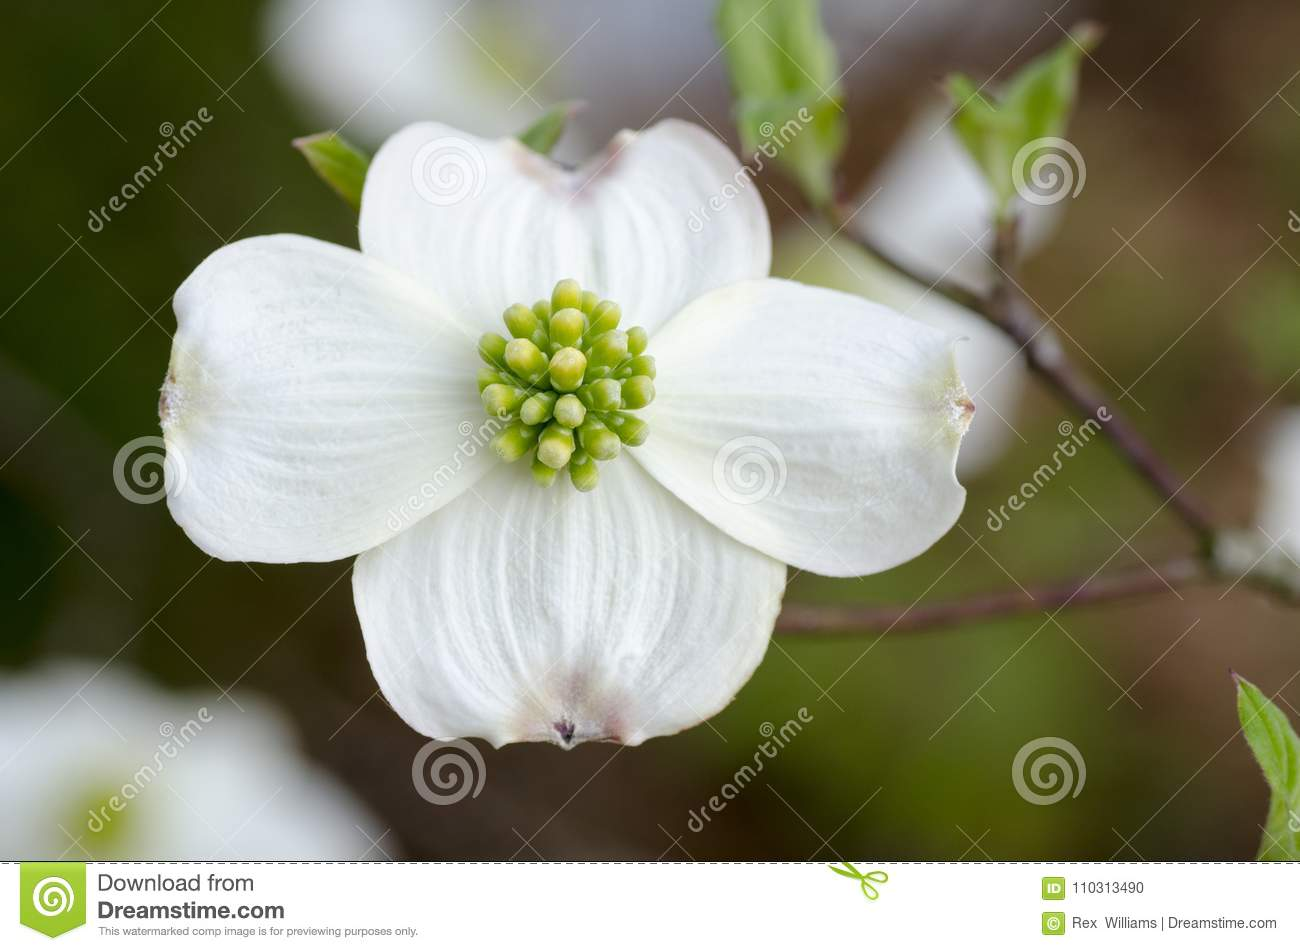 Dogwood flower white macro shot stock photo image of beauty download dogwood flower white macro shot stock photo image of beauty spring 110313490 mightylinksfo